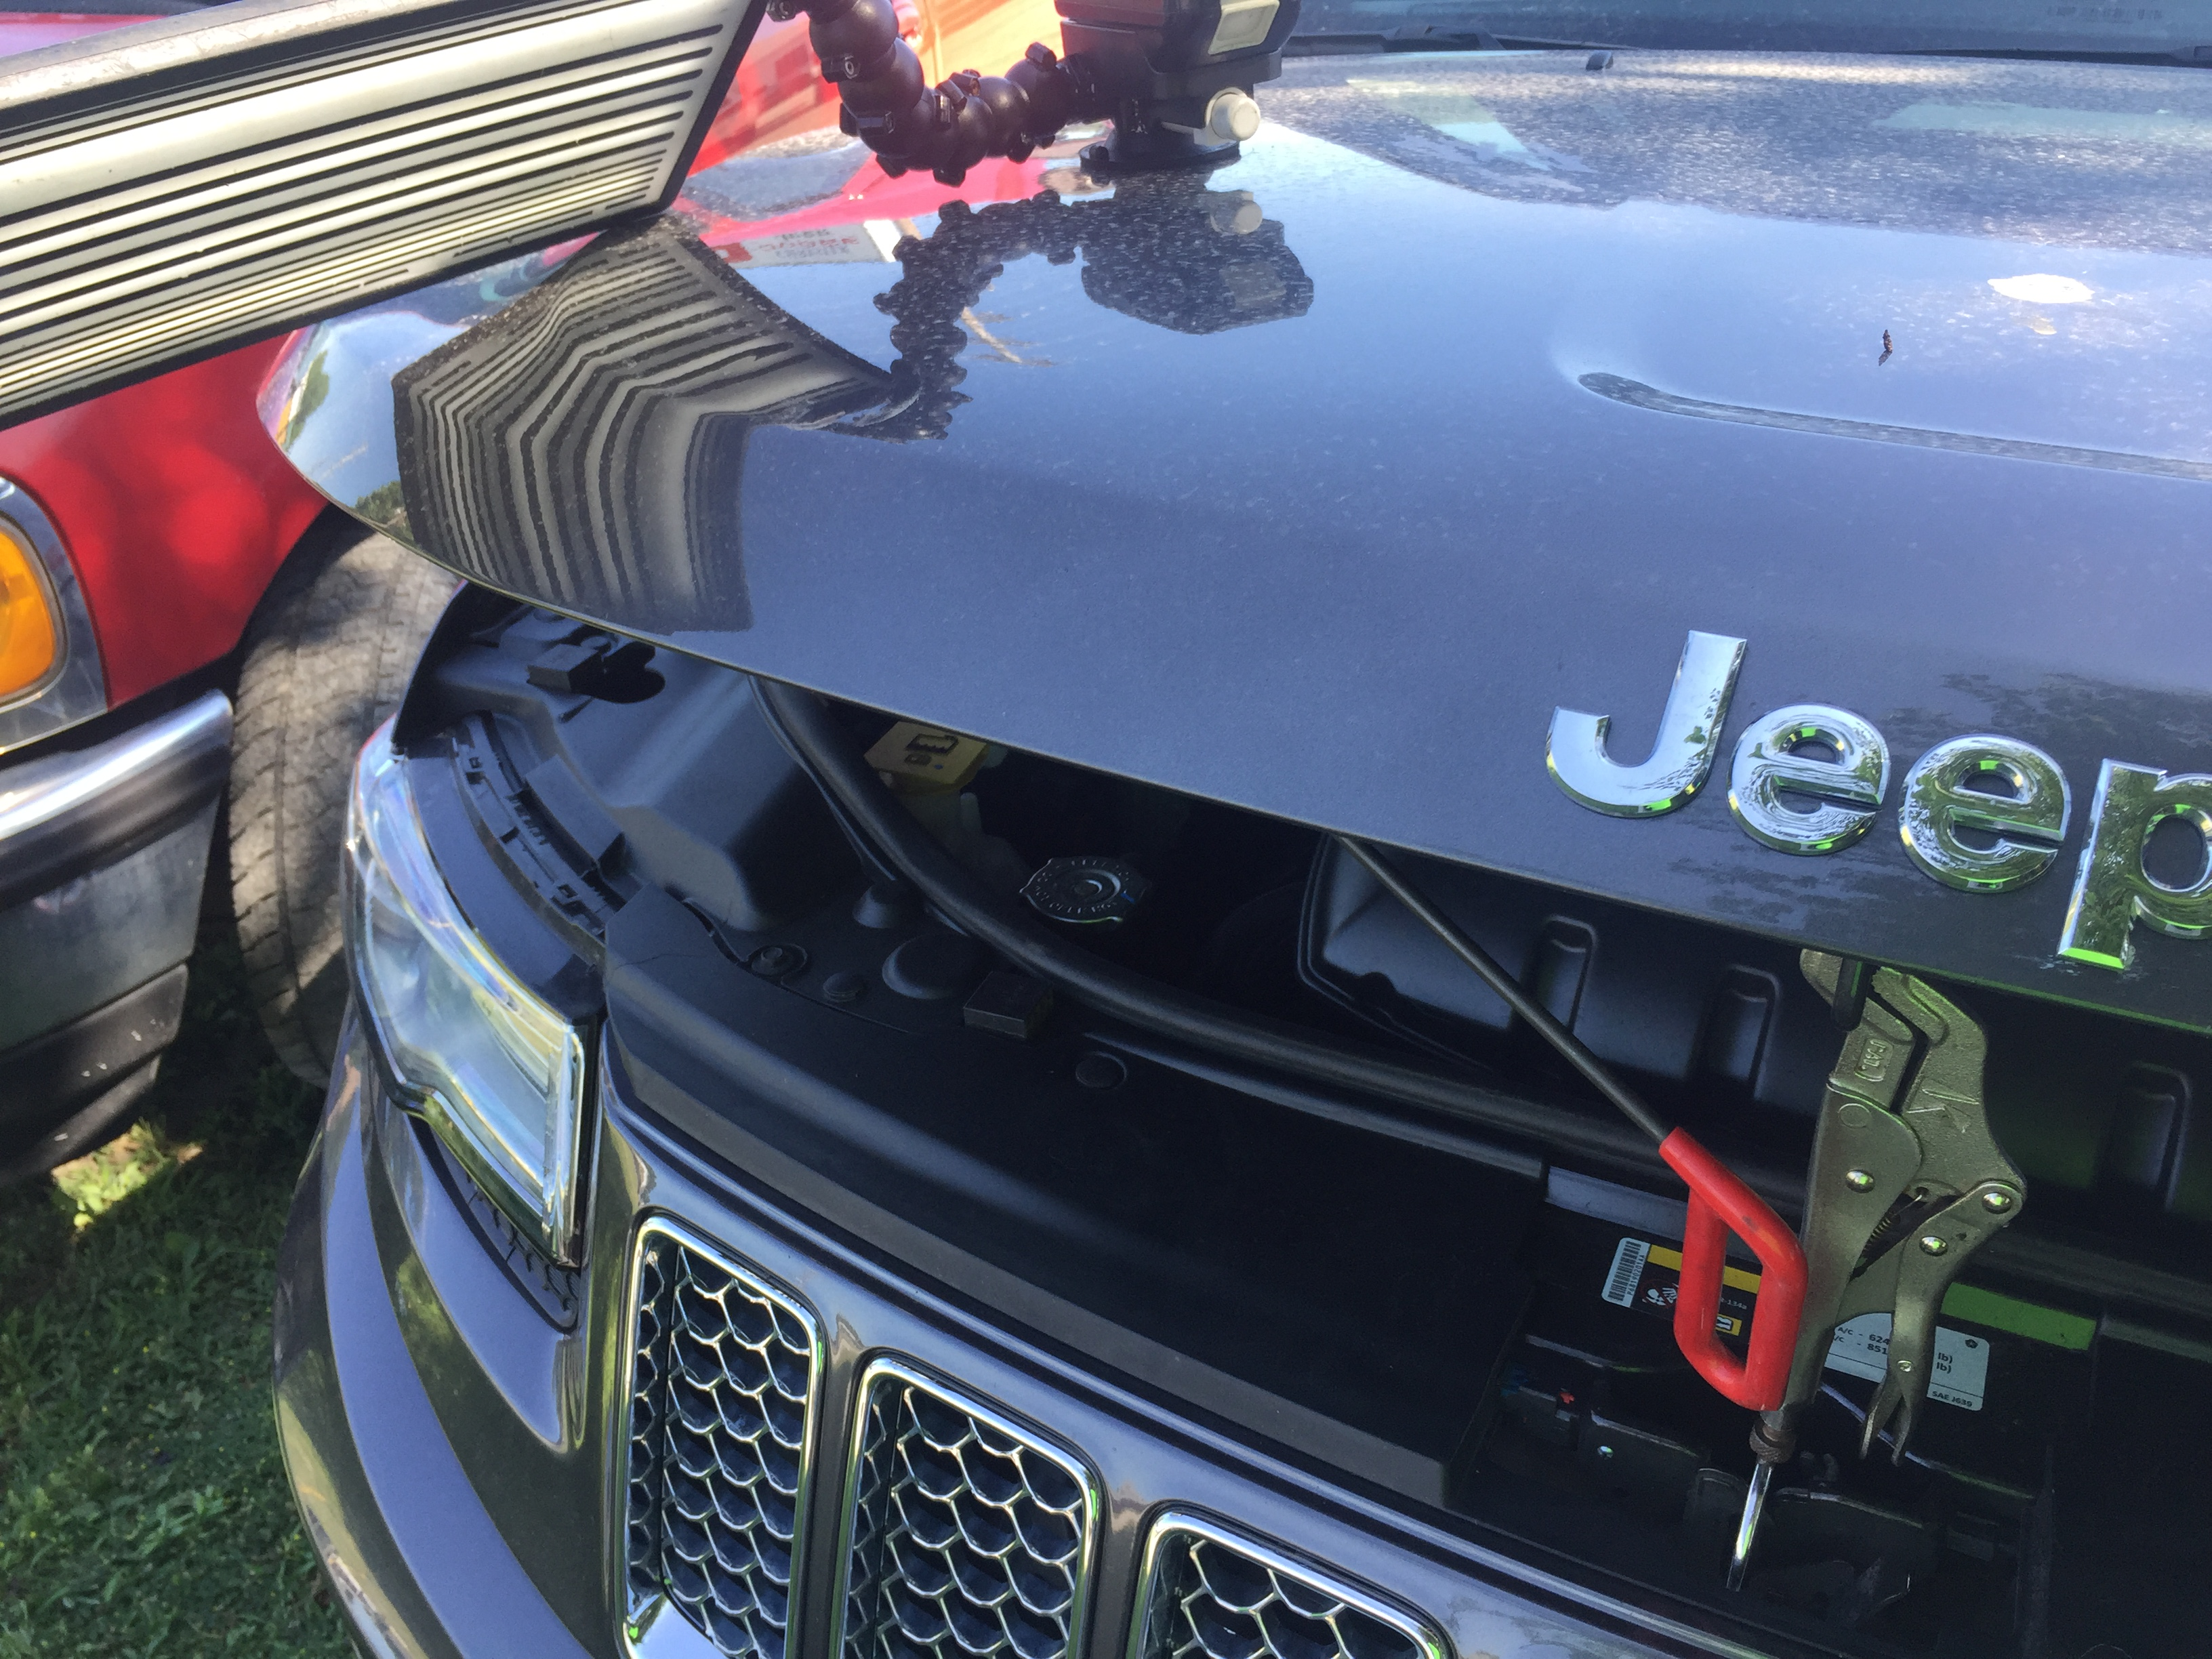 2014 Grand Cherokee Dent Repair on Hood, by Michael Bocek out of Springfield, IL http://217dent.com